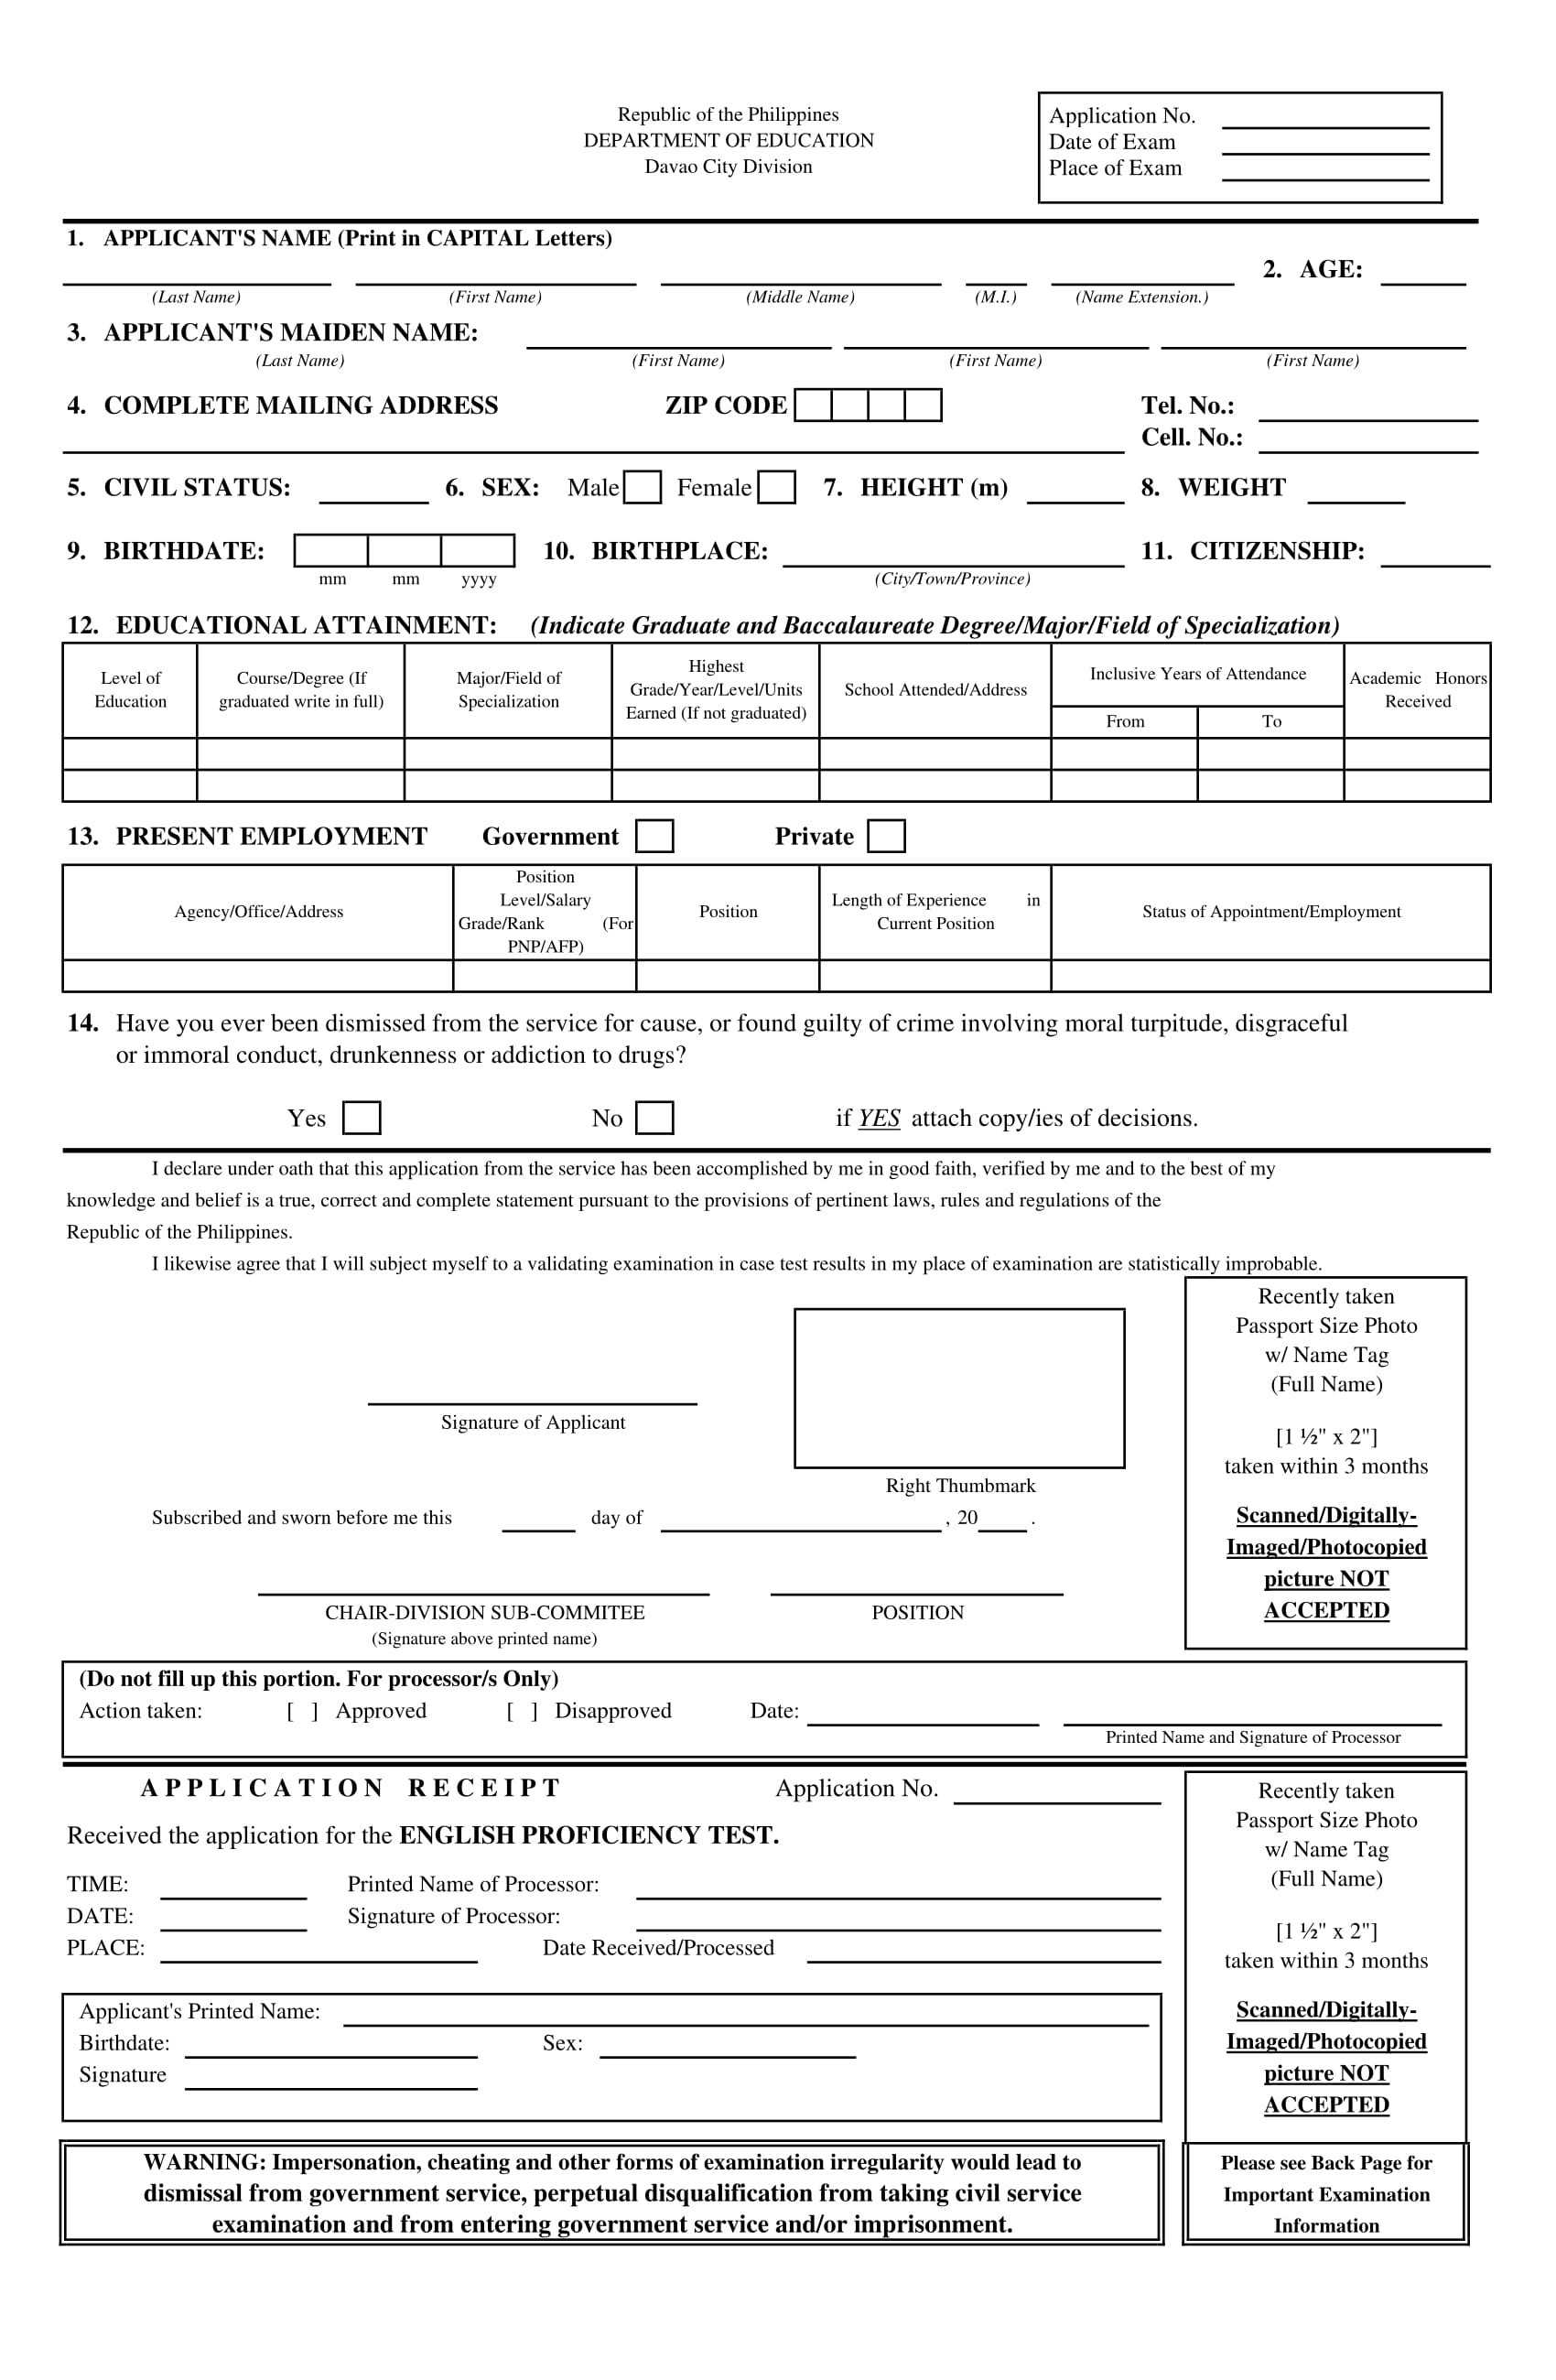 english proficiency test application form 1